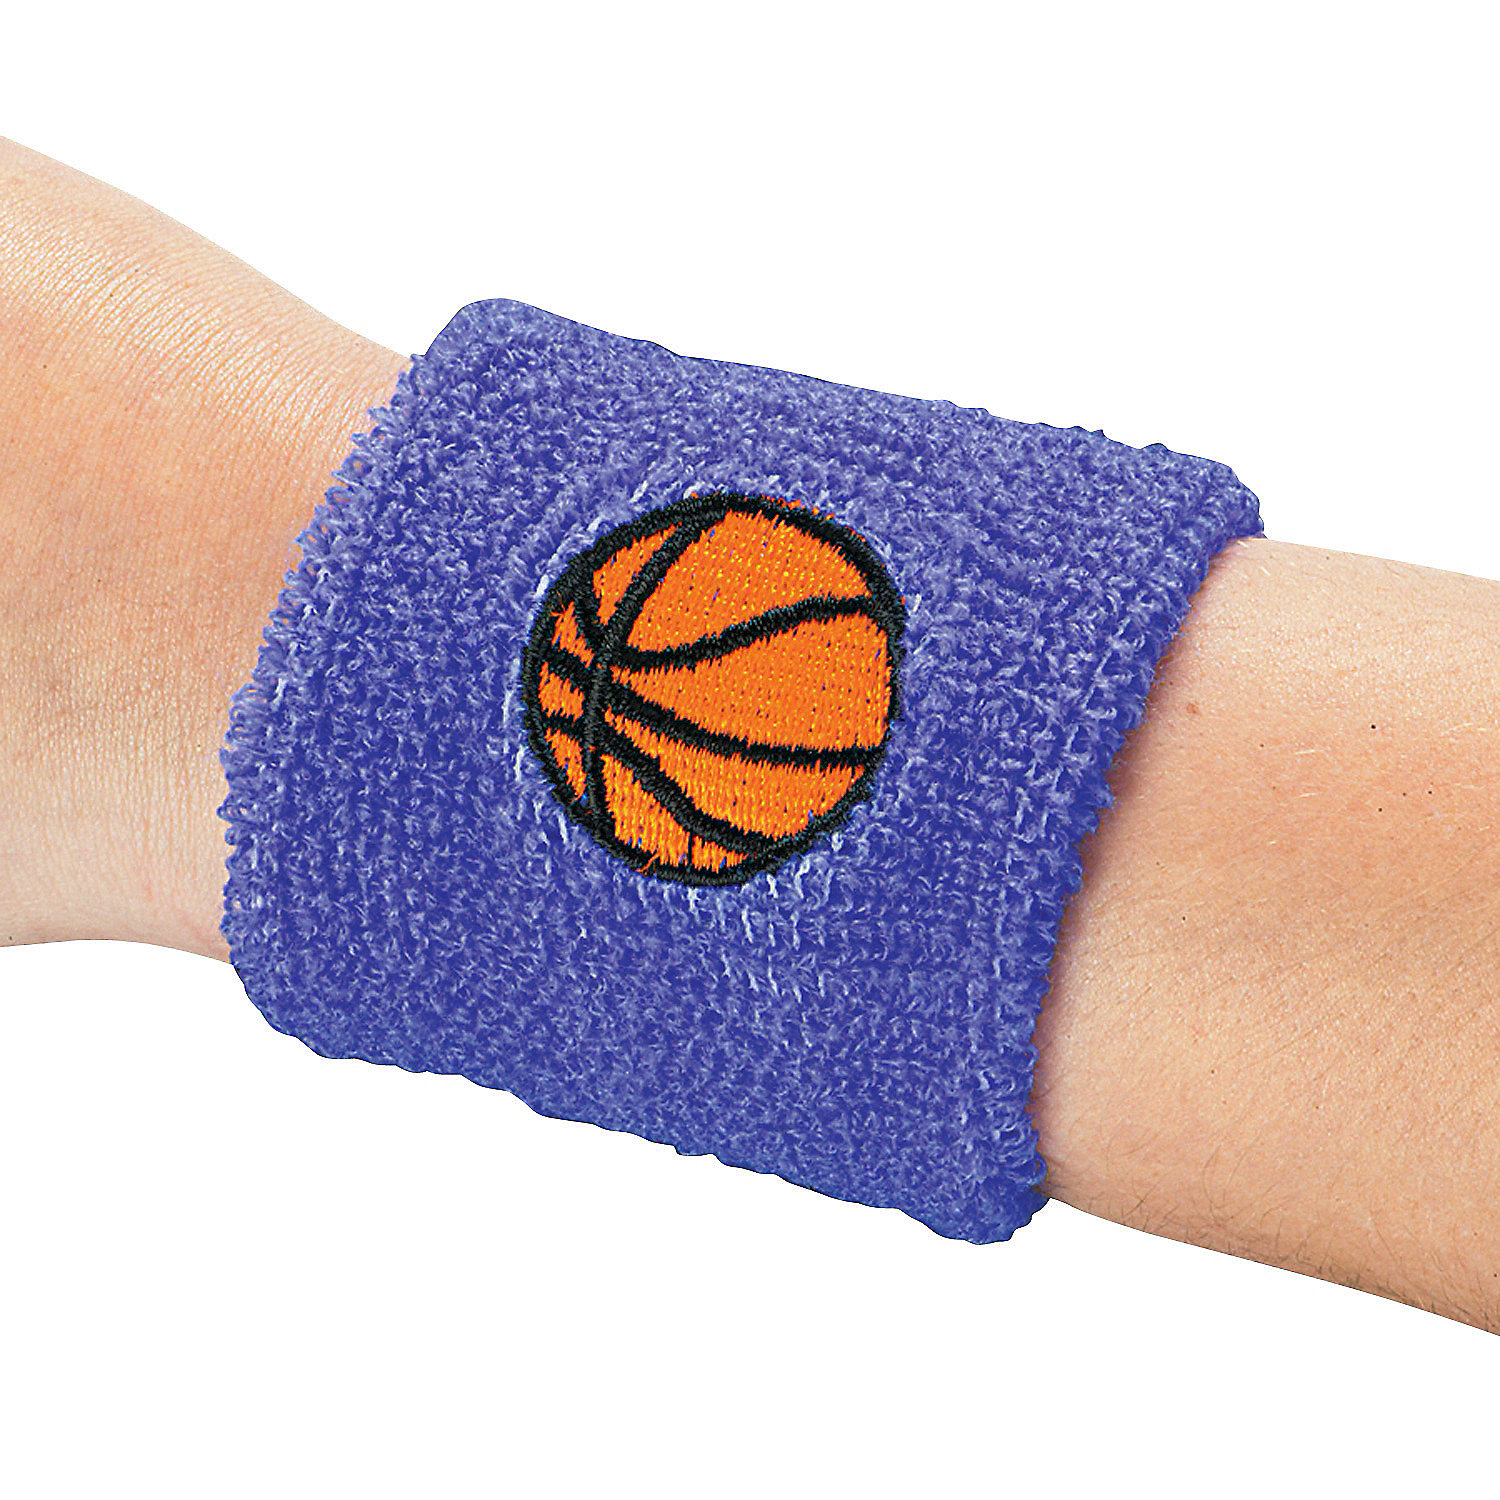 And wristbands are appropriate for all types of businesses. In addition to sports uses, schools, churches, entertainment and other organizations all employ wristbands to carry Founded: Jun 17,